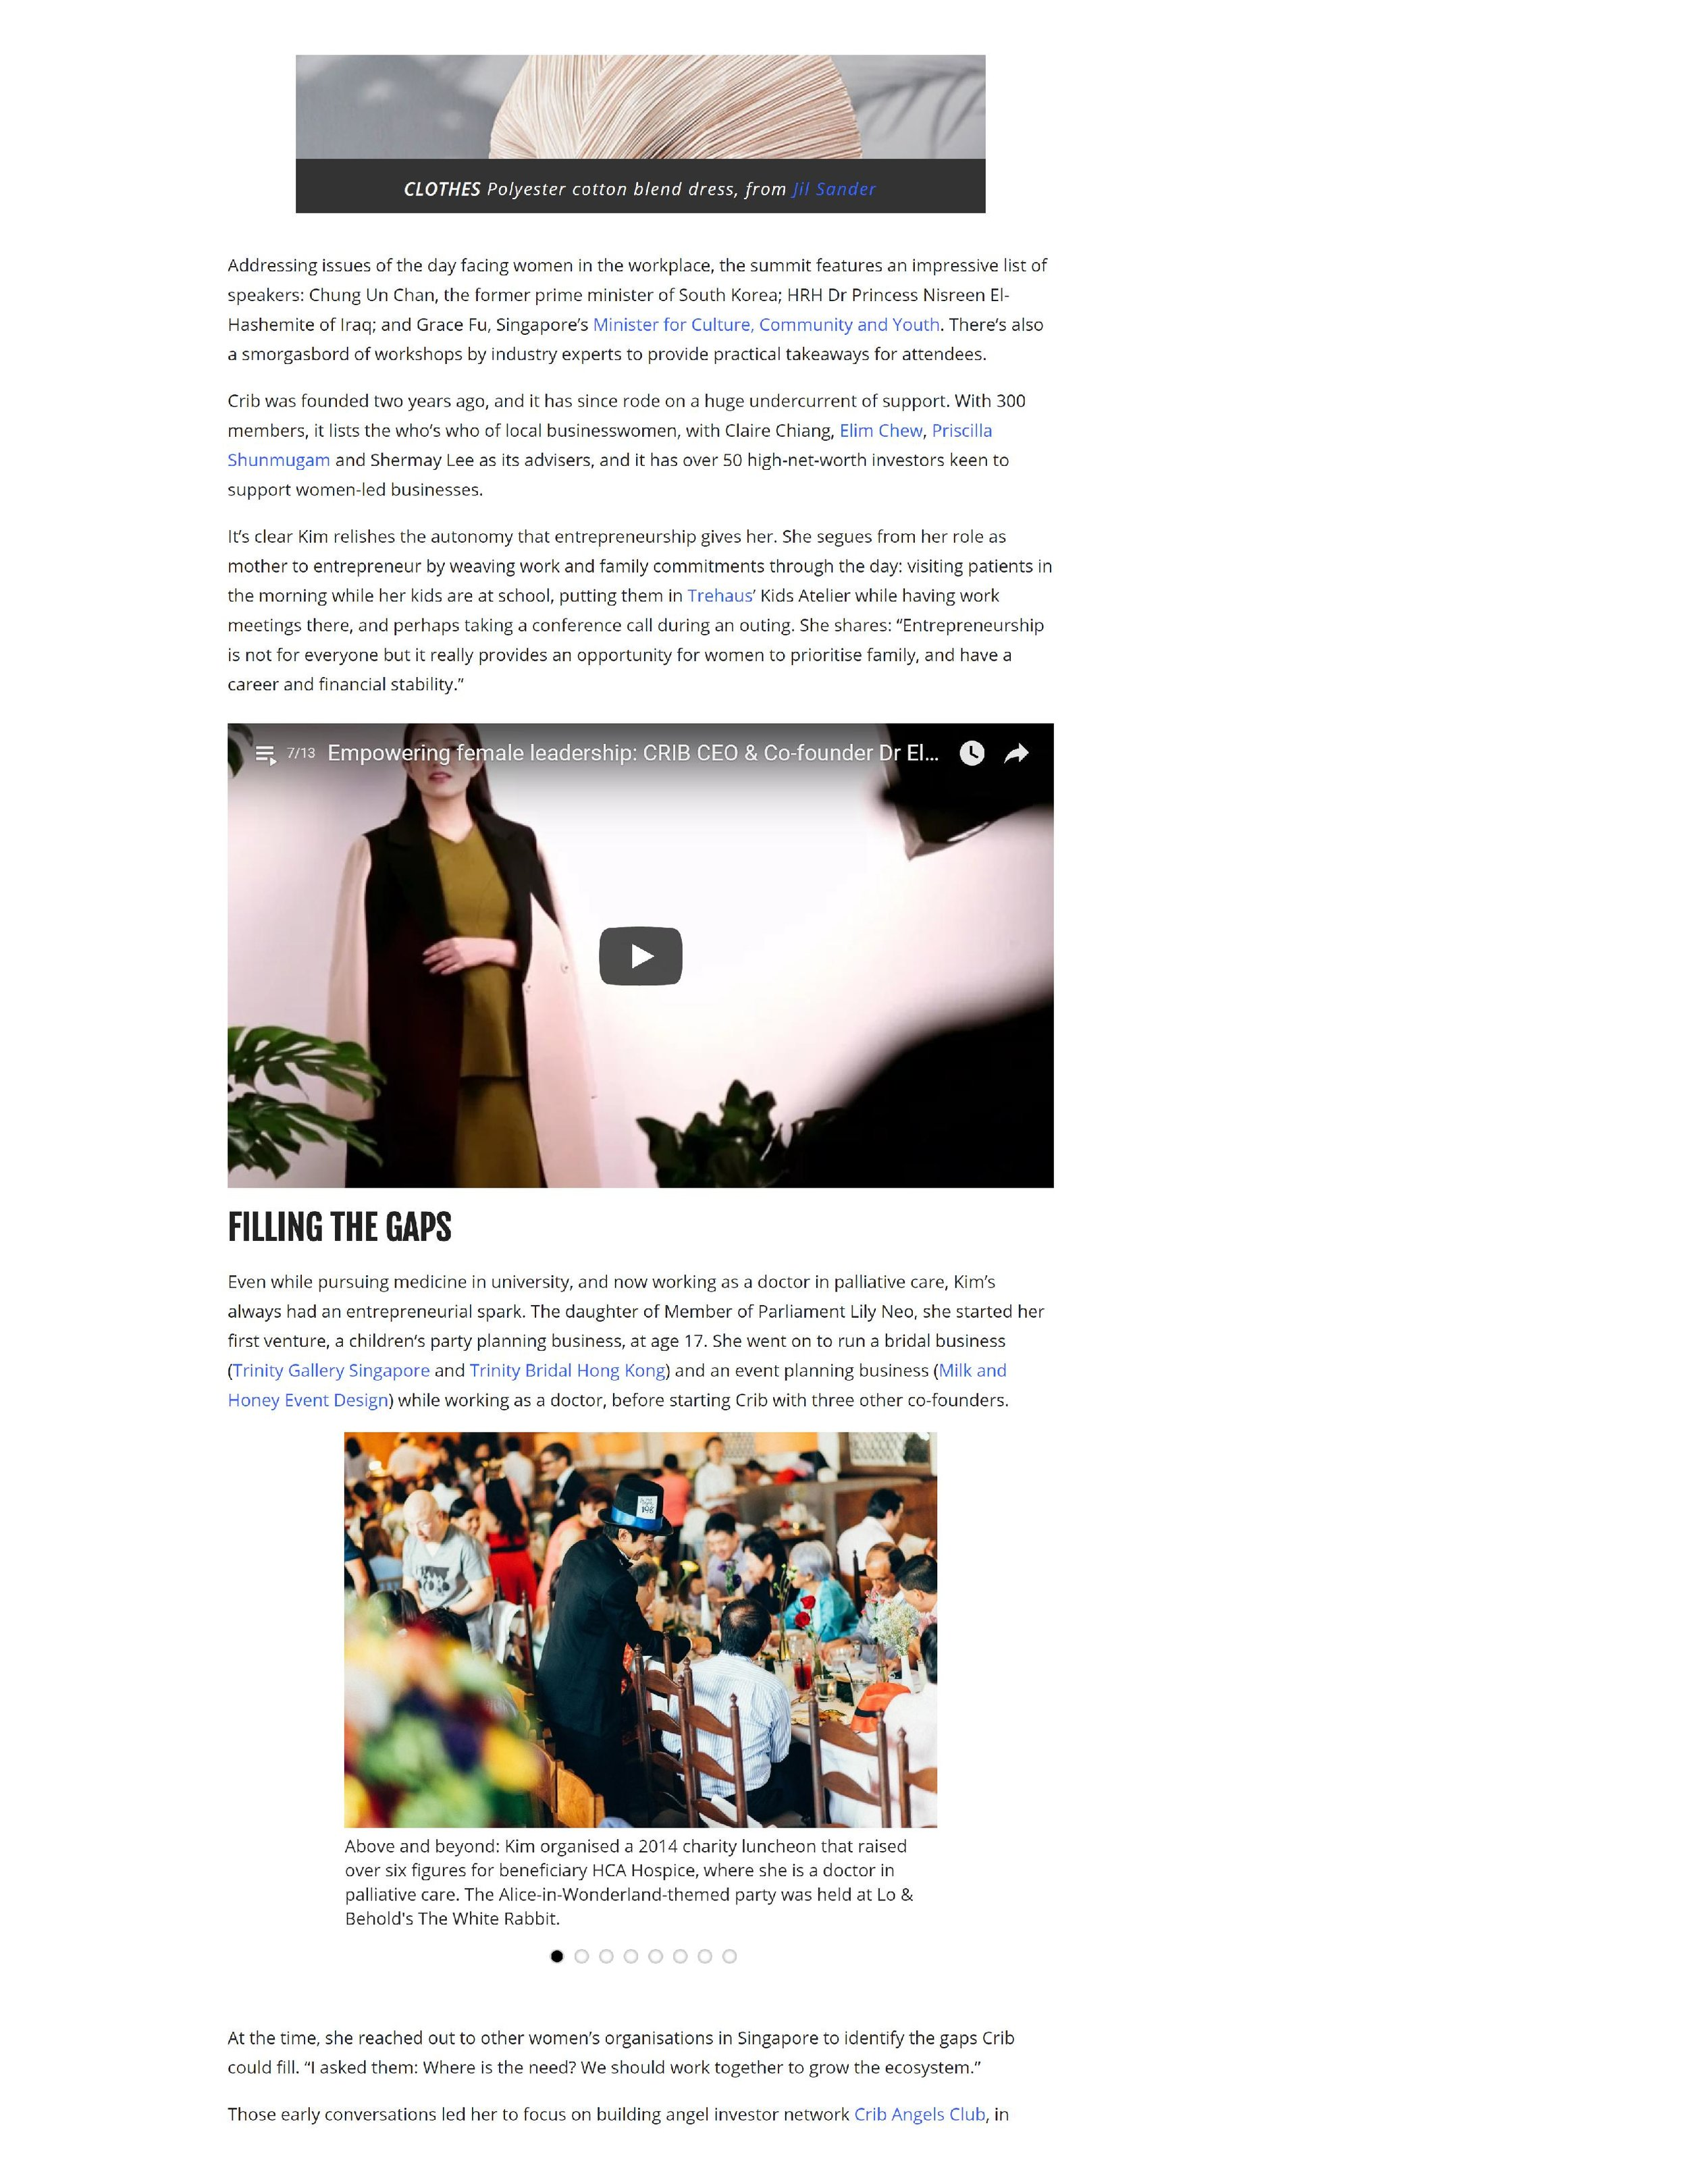 screencapture-thepeakmagazine-sg-interviews-crib-co-founder-elaine-kim-empowering-womens-dreams-entrepreneurship-2018-09-13-19_32_12-page-002.jpg